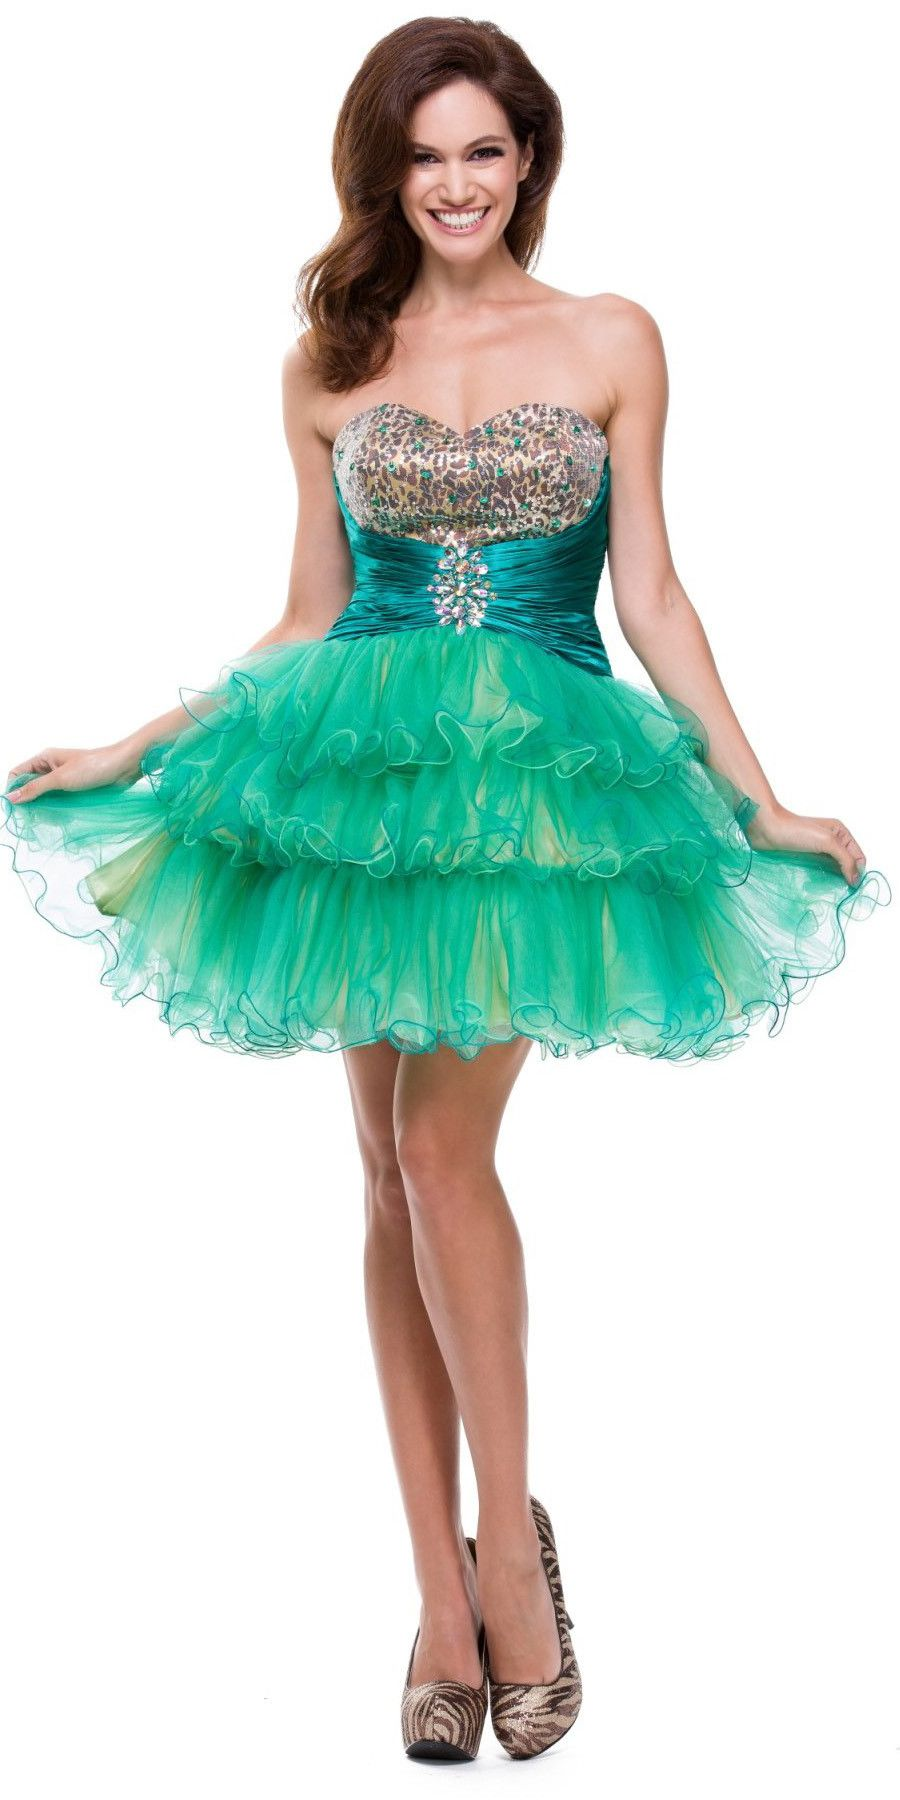 ON SPECIAL - LIMITED STOCK - Animal Leopard Print Teal Sweet 15 ...